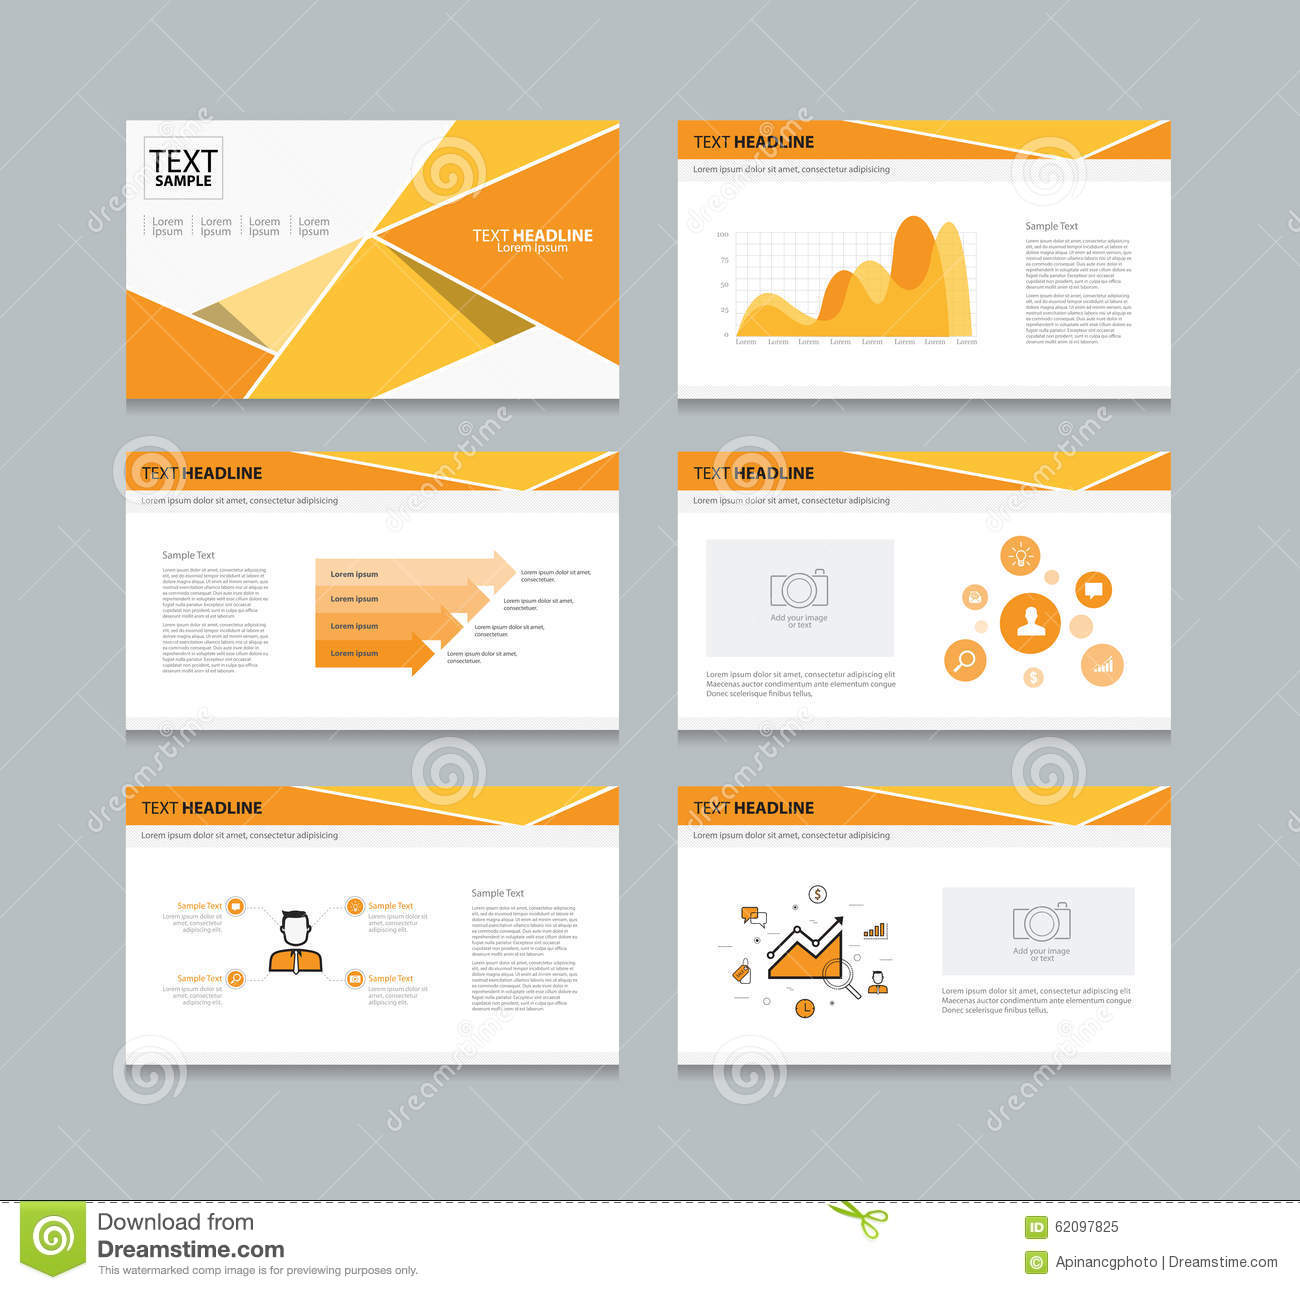 vector template presentation slides background design orange stock